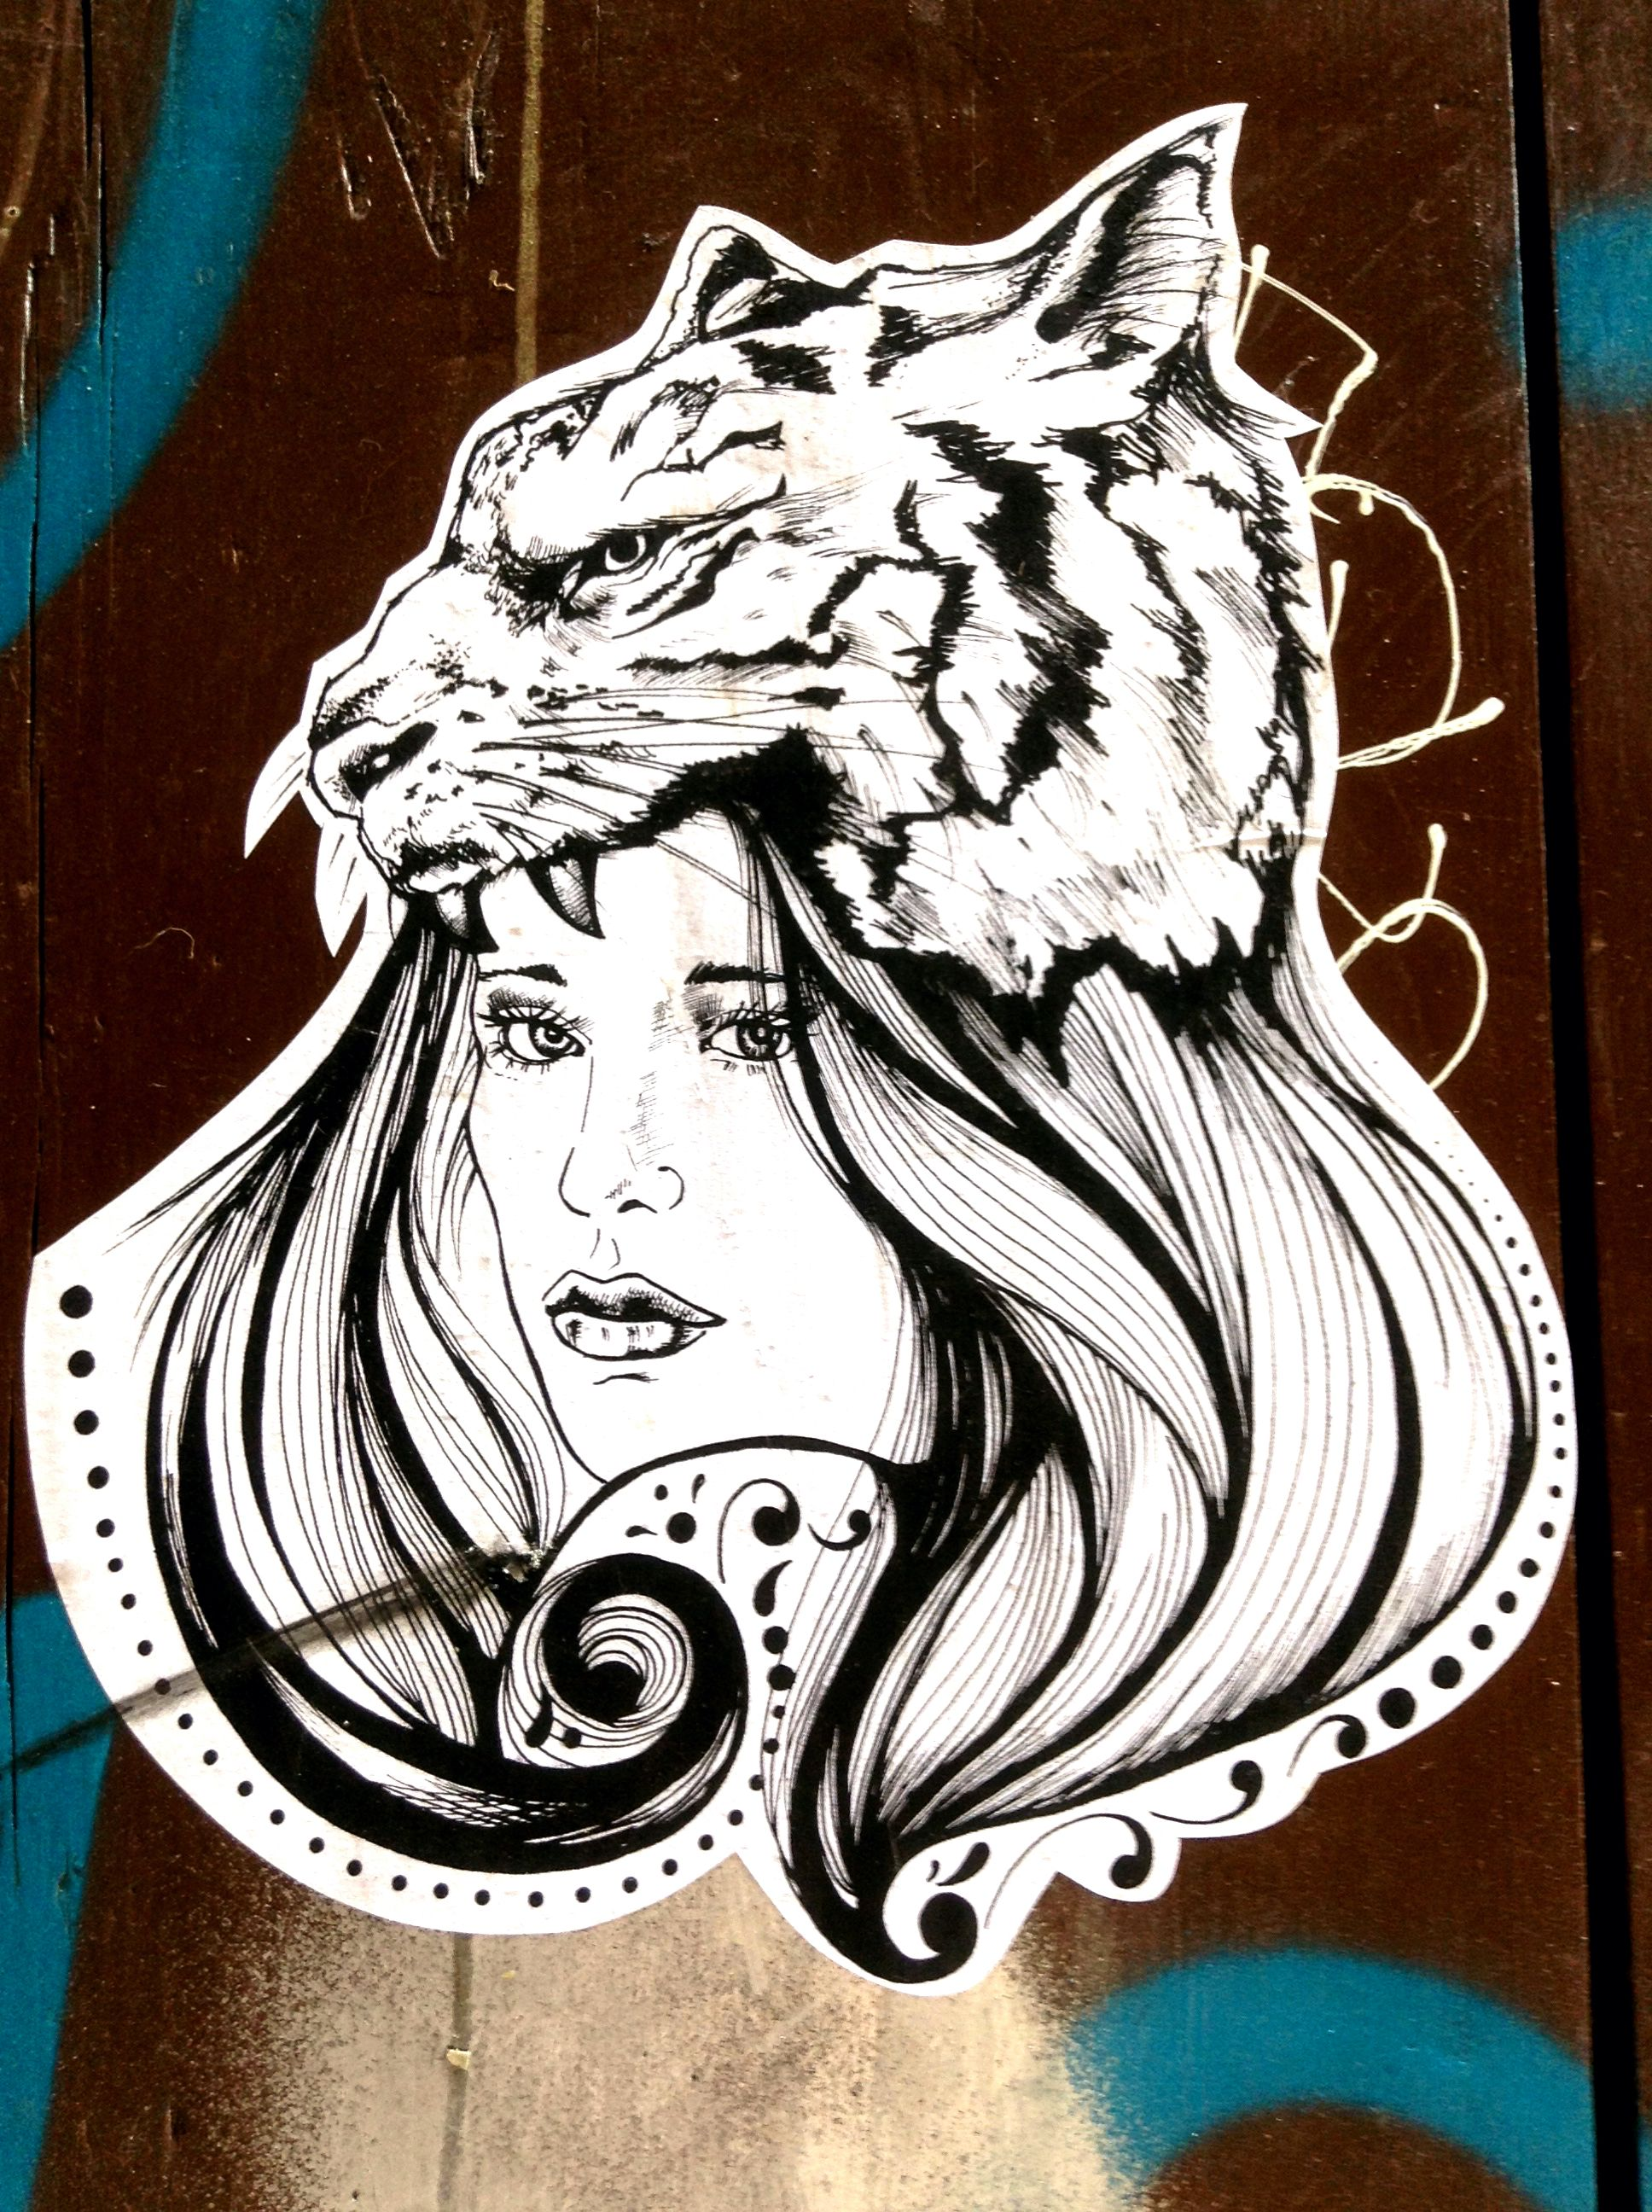 Tiger & Woman style ! #Tiger #Woman #Black&White #Black #White #Beautiful #Girl #StreetArt #Street #Art #Barcelona #B4S #Bcn #Catalonia #Inspiration #FOS #FreedomOfSpeech #Artist